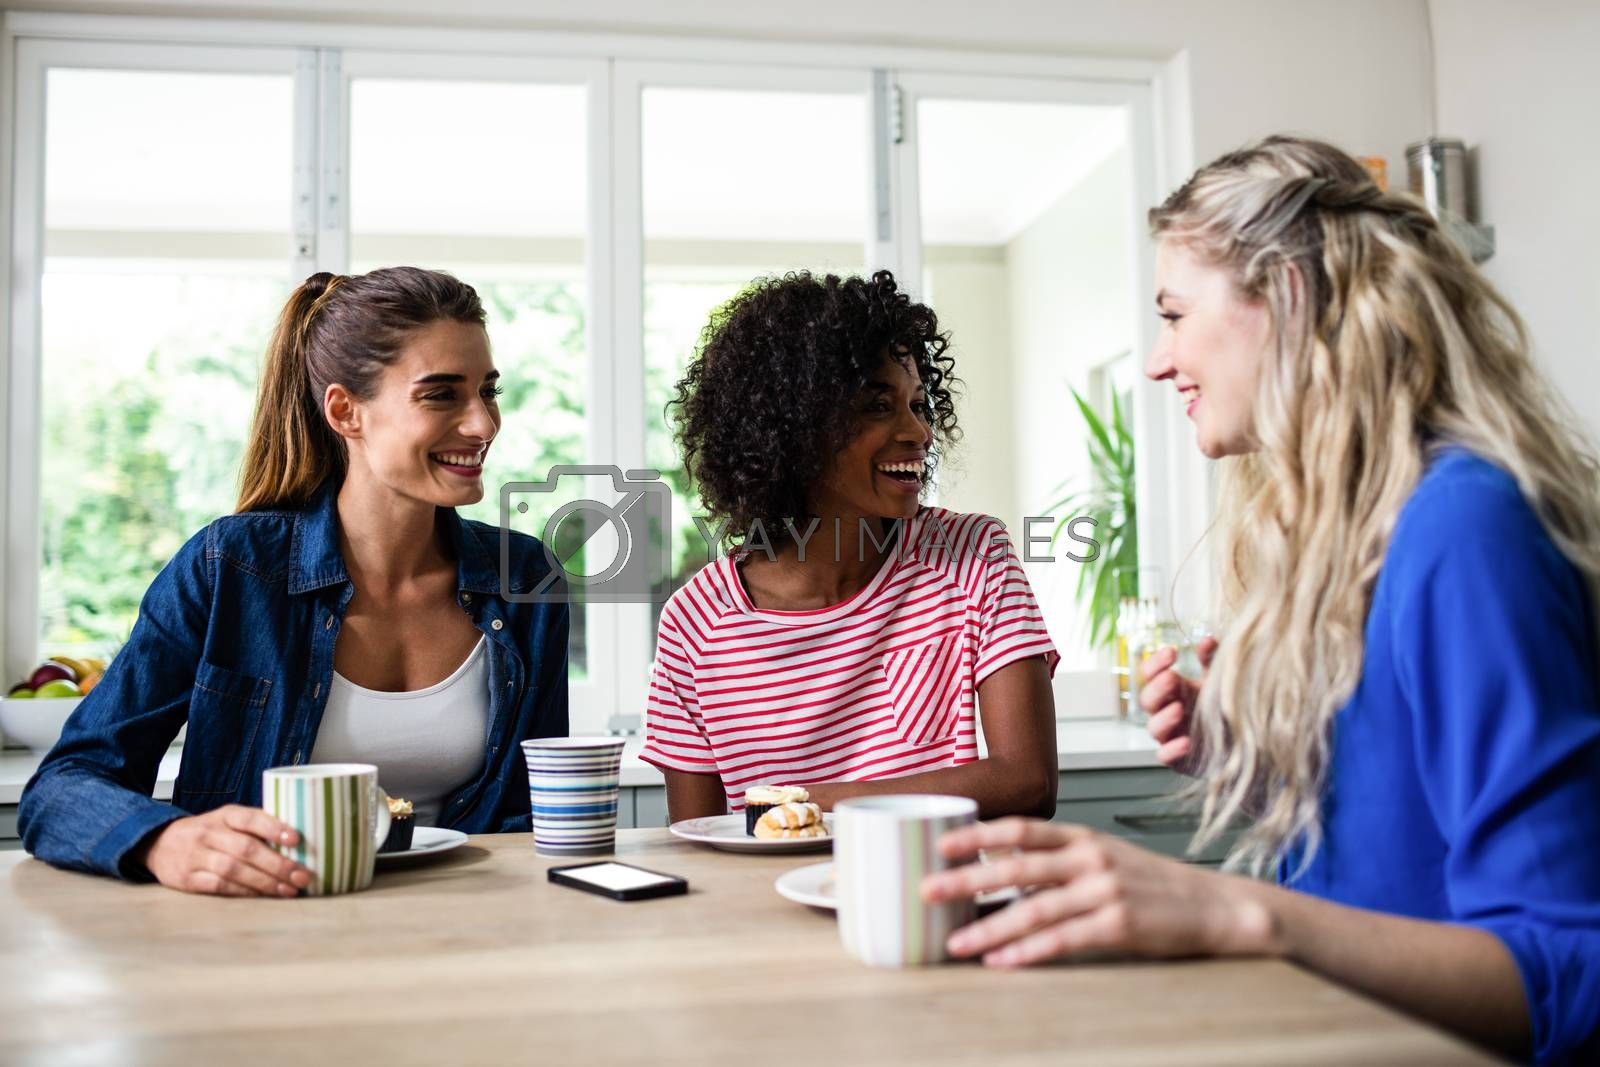 Young female friends smiling while having breakfast at table in house